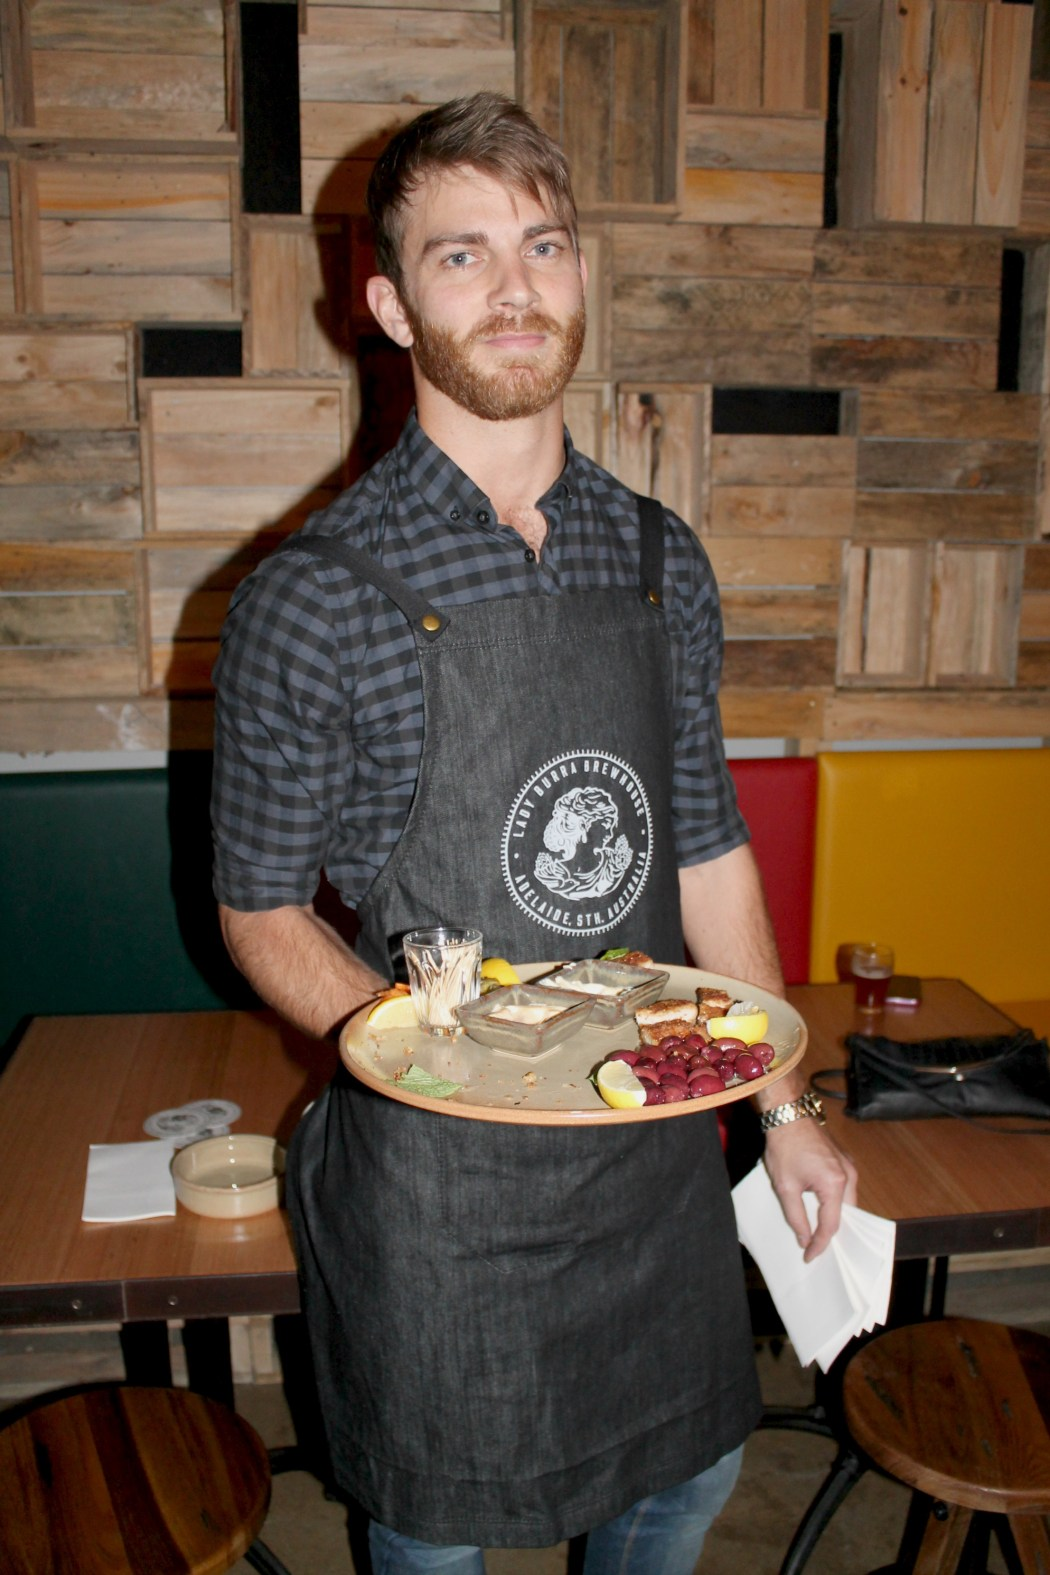 Delicious cured meats and platters courtesy of